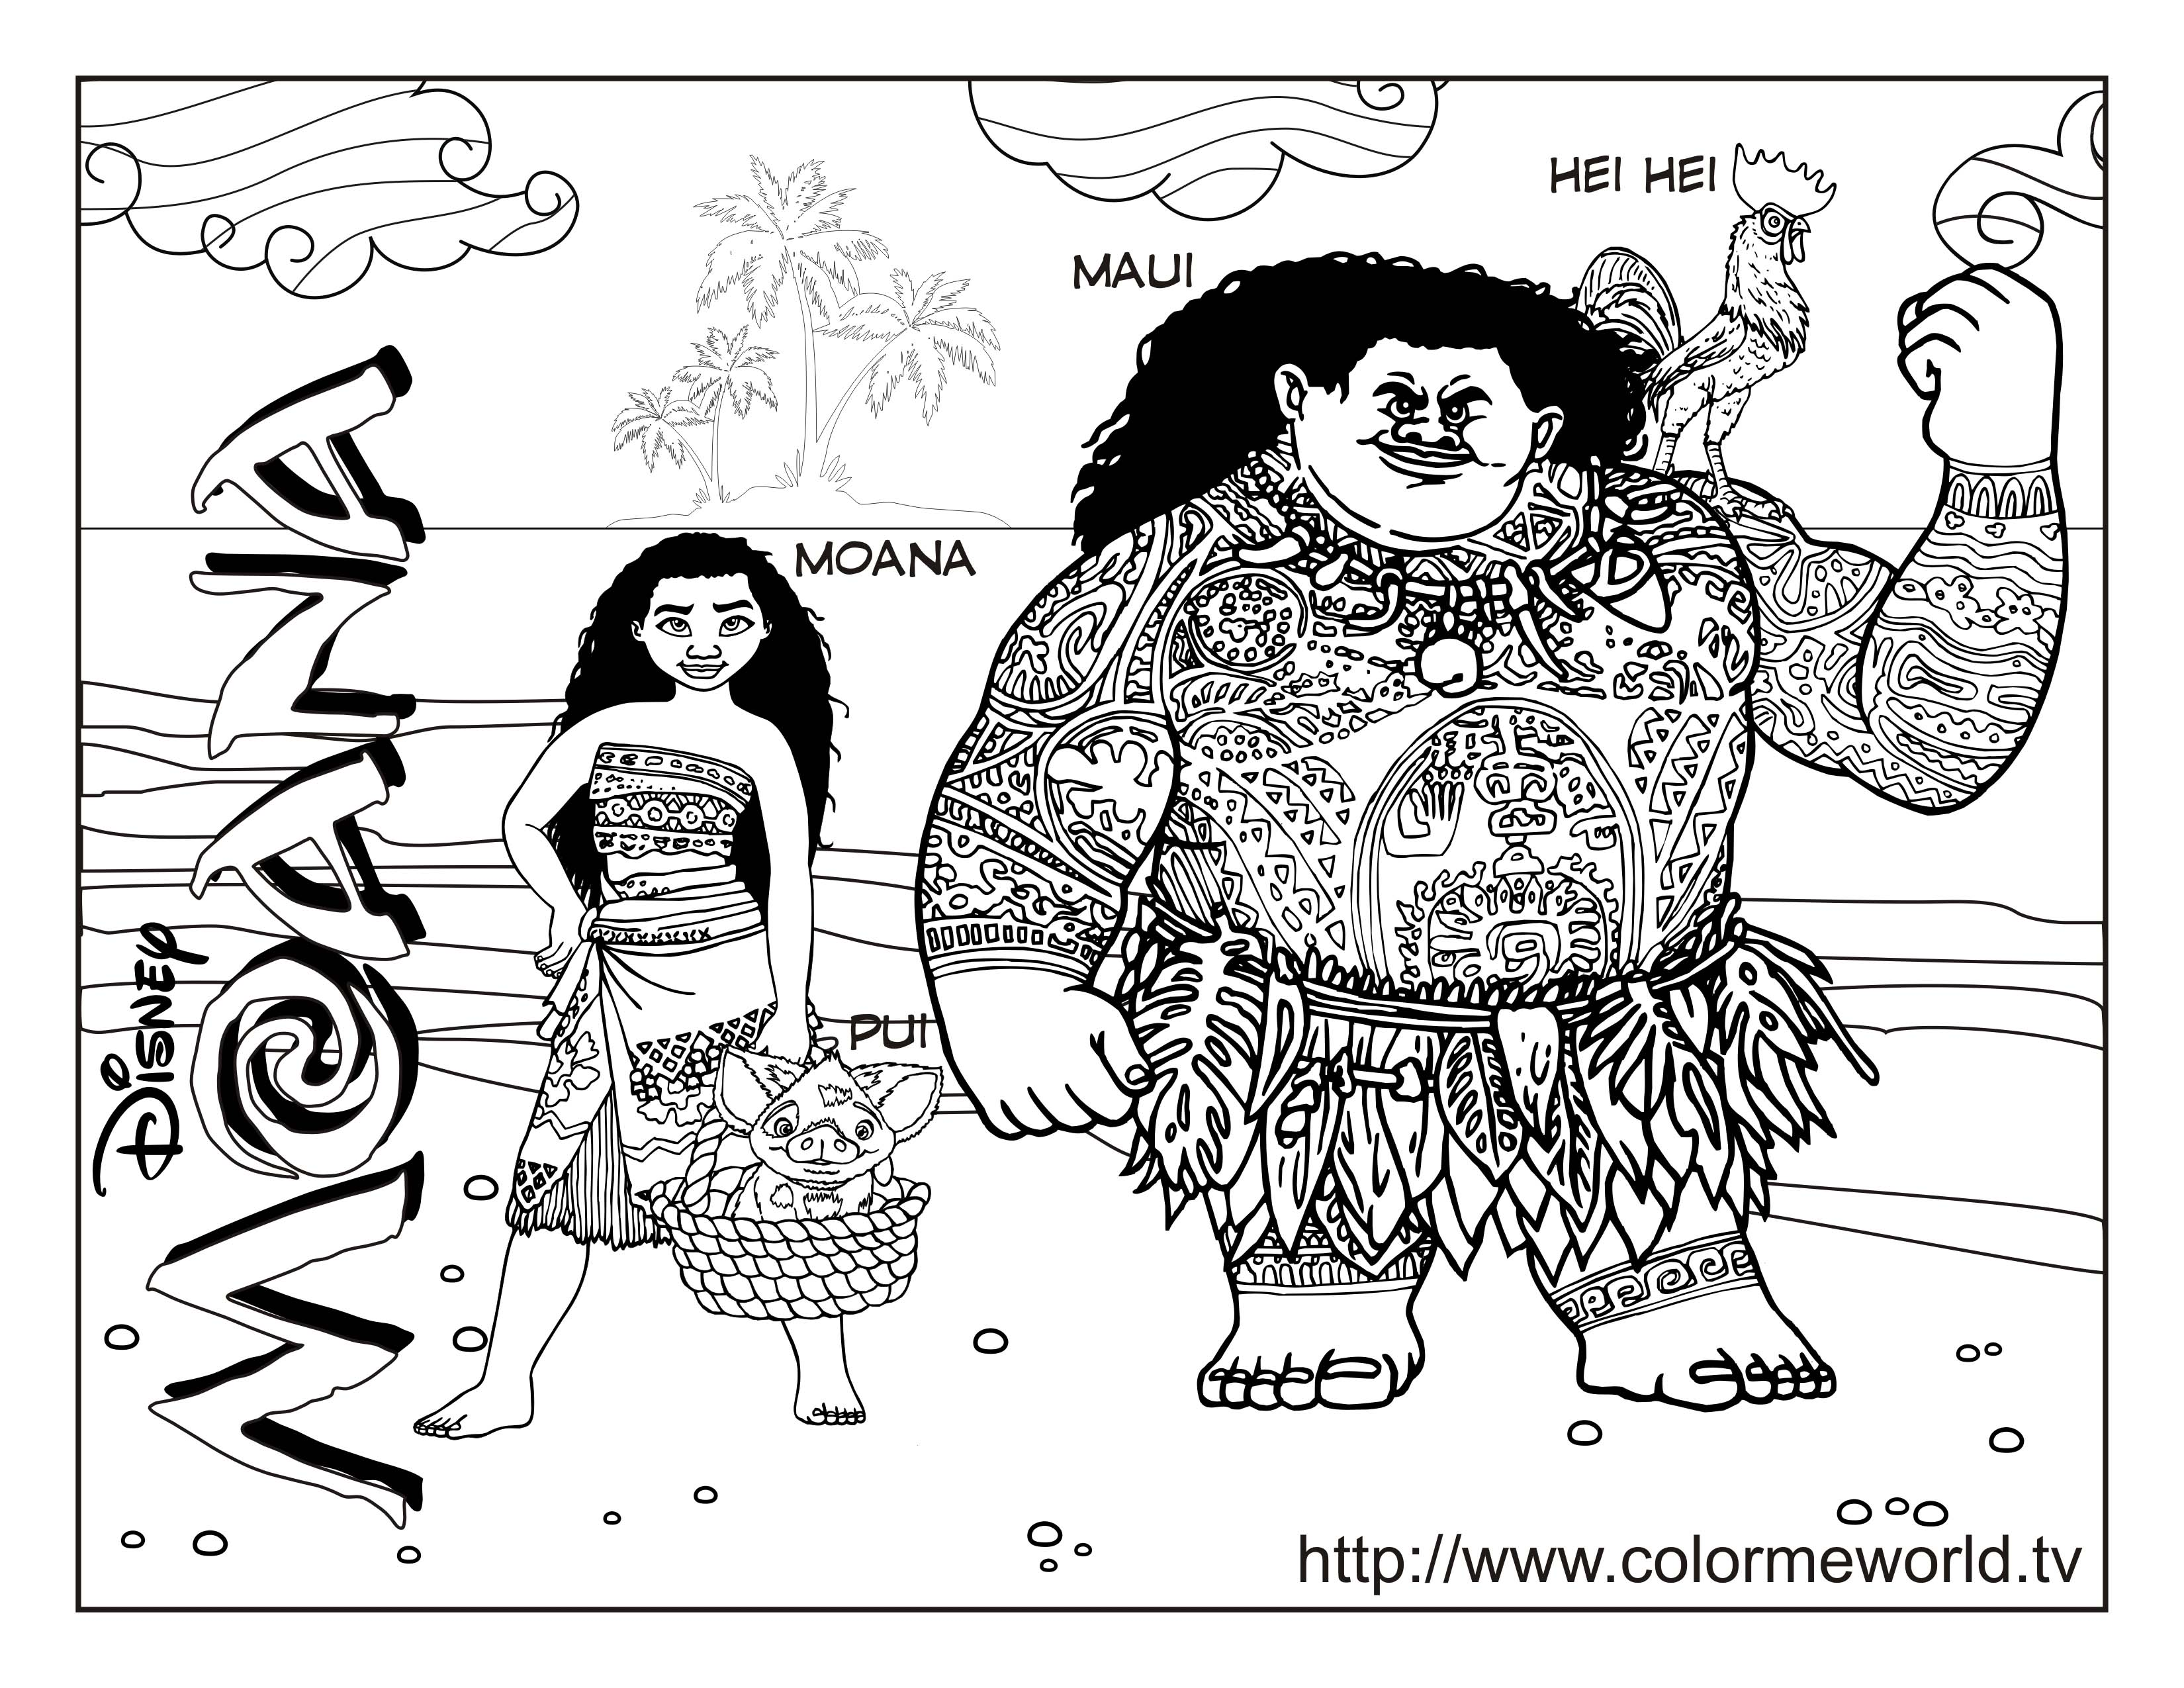 Moana, Maui and Hei Hei Coloring Page